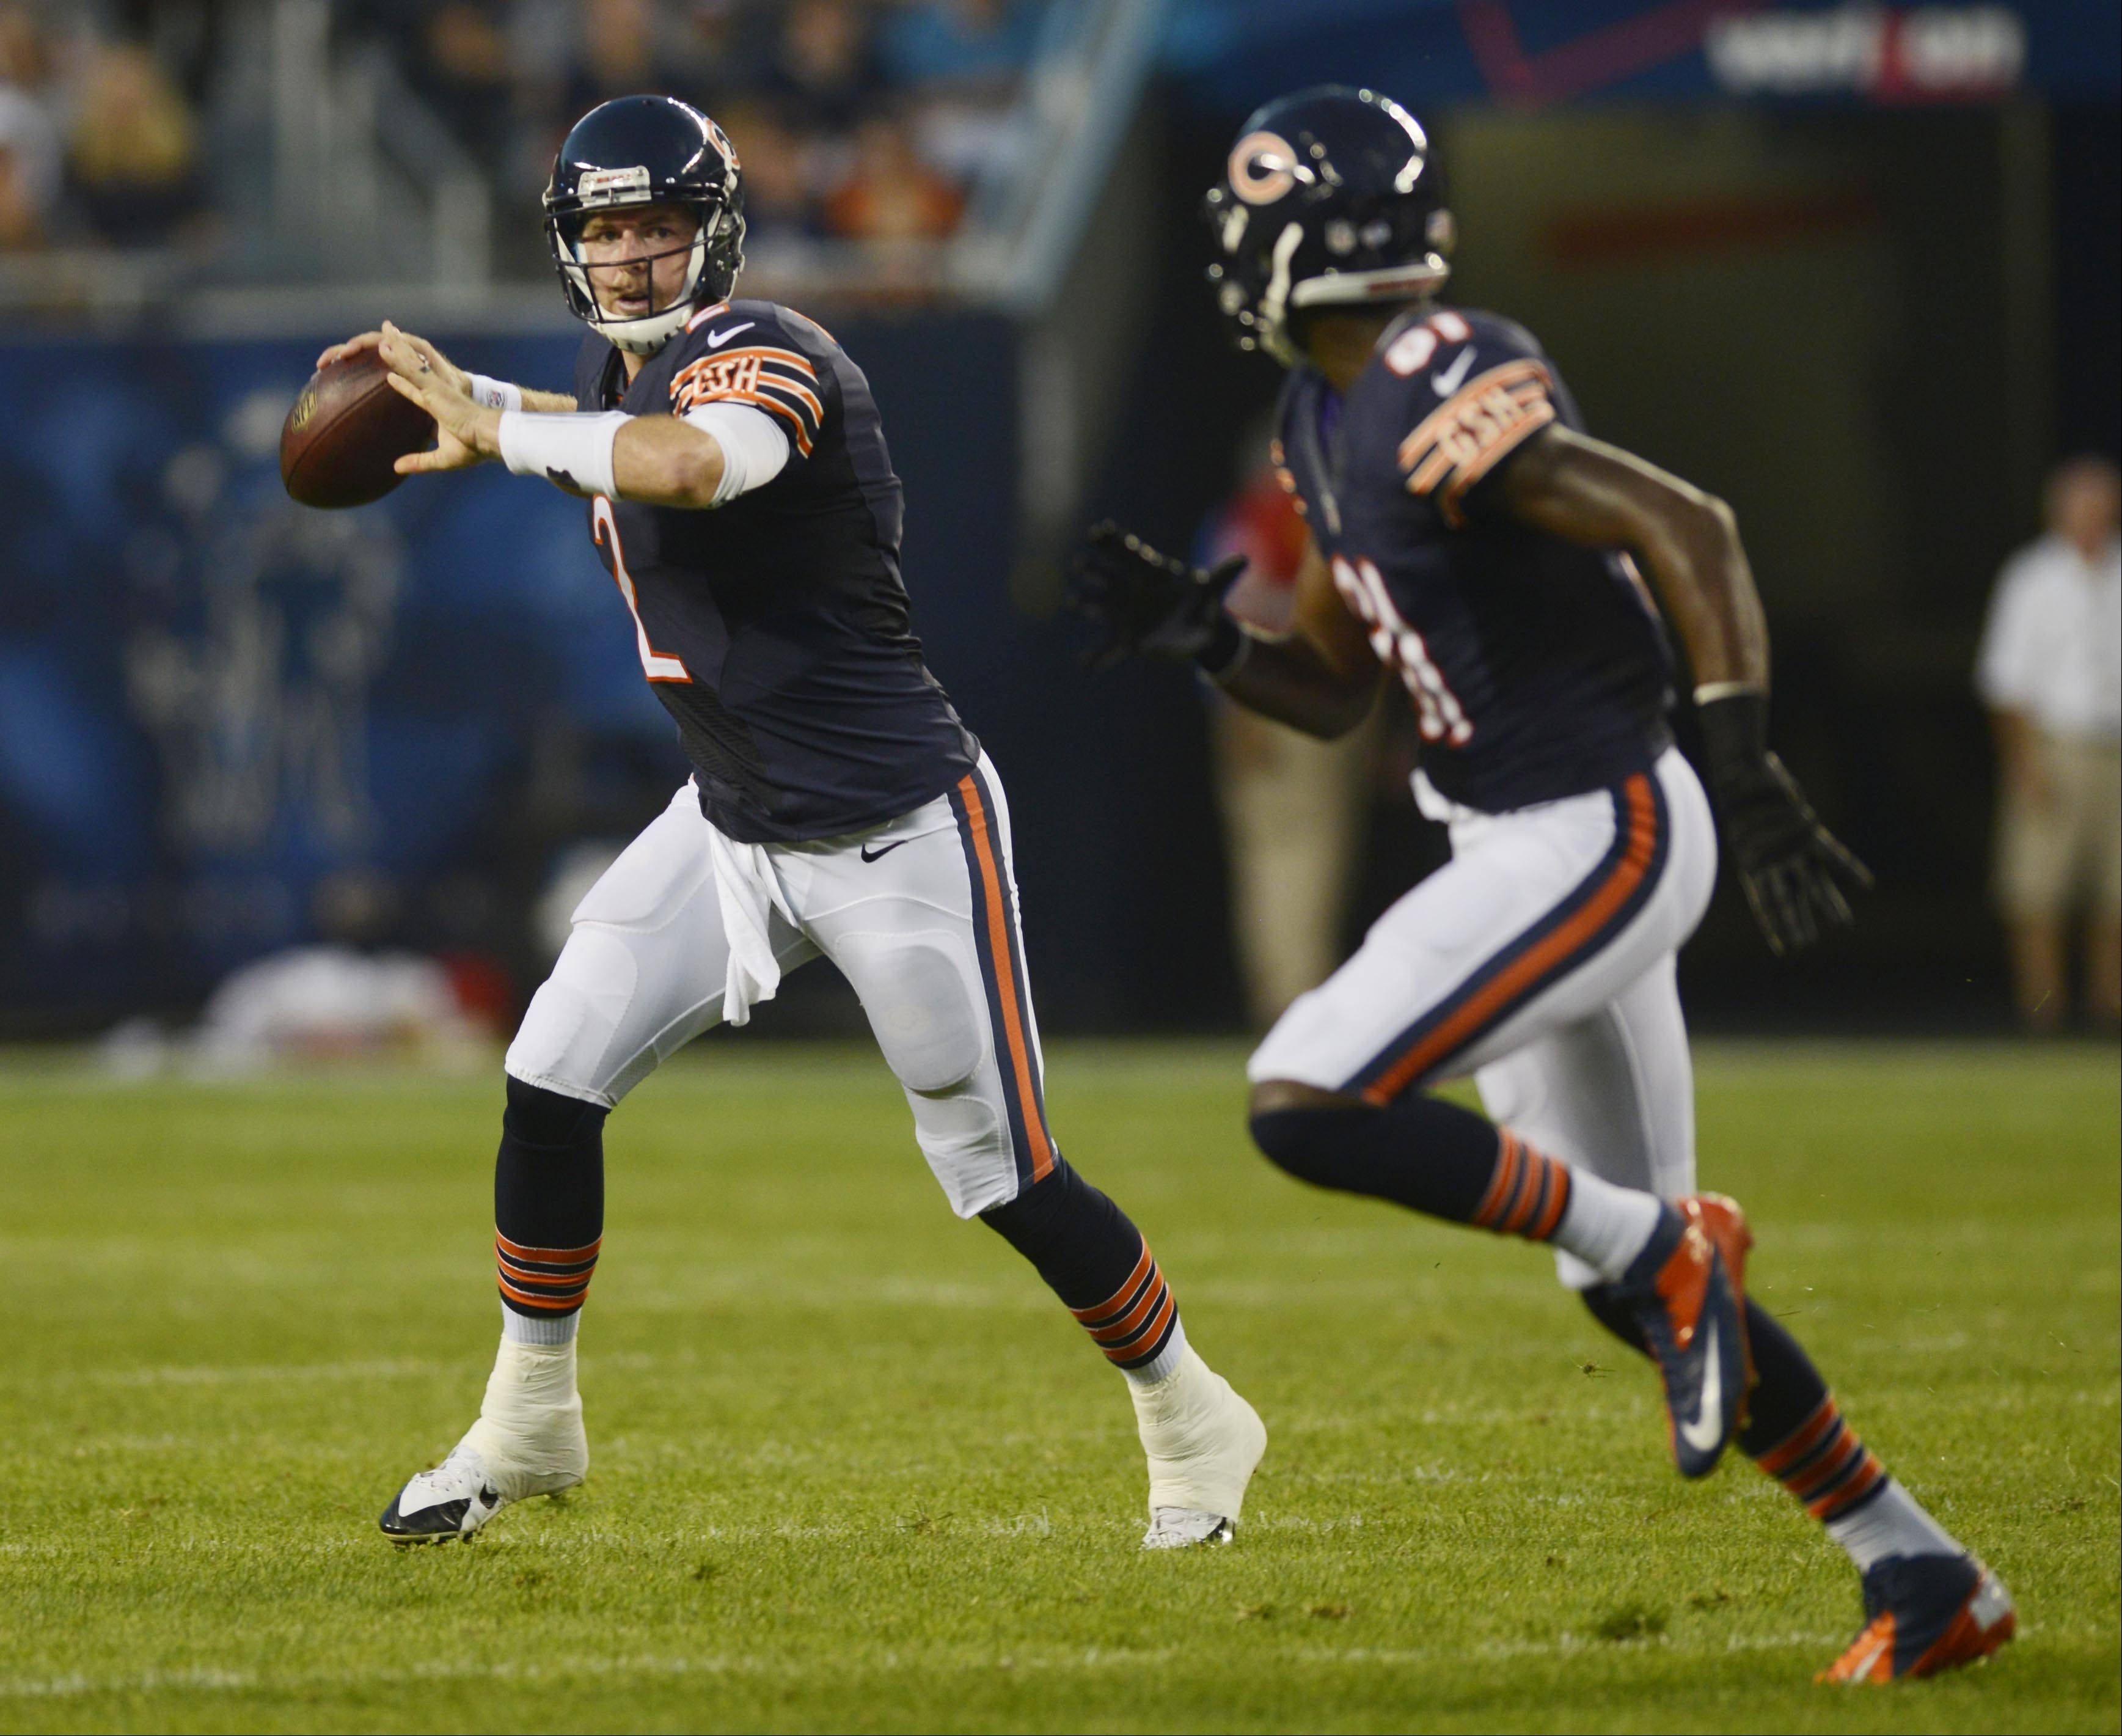 Chicago Bears quarterback Jordan Palmer throws a first-down pass to wide receiver Terrence Toliver.